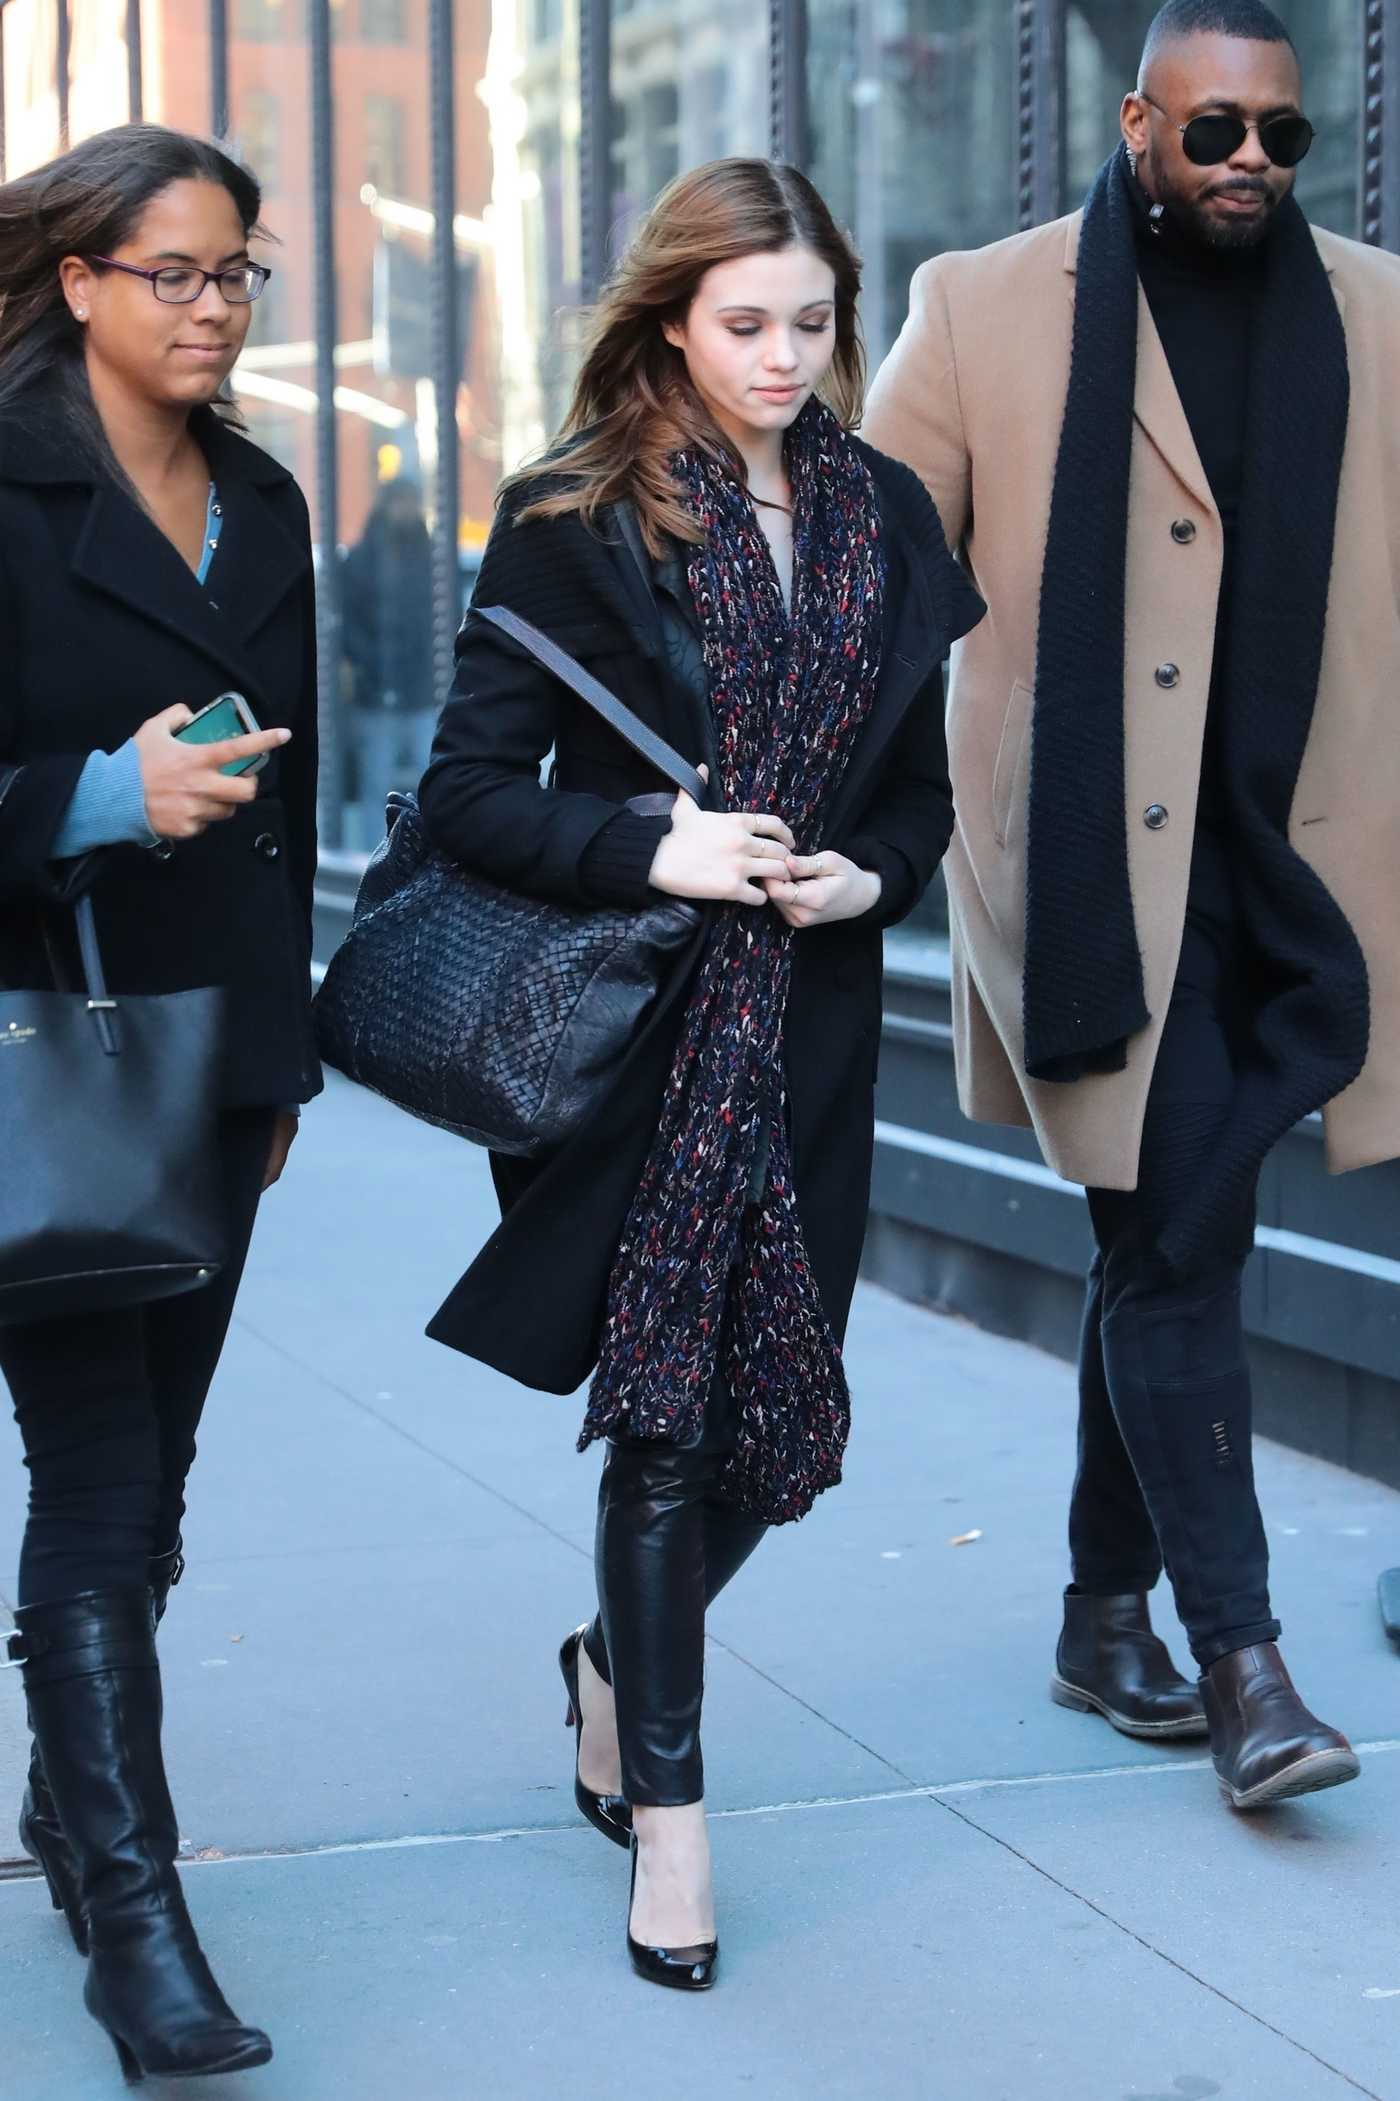 India Eisley in a Black Coat Arrives at AOL Build Series in New York 01/22/2019